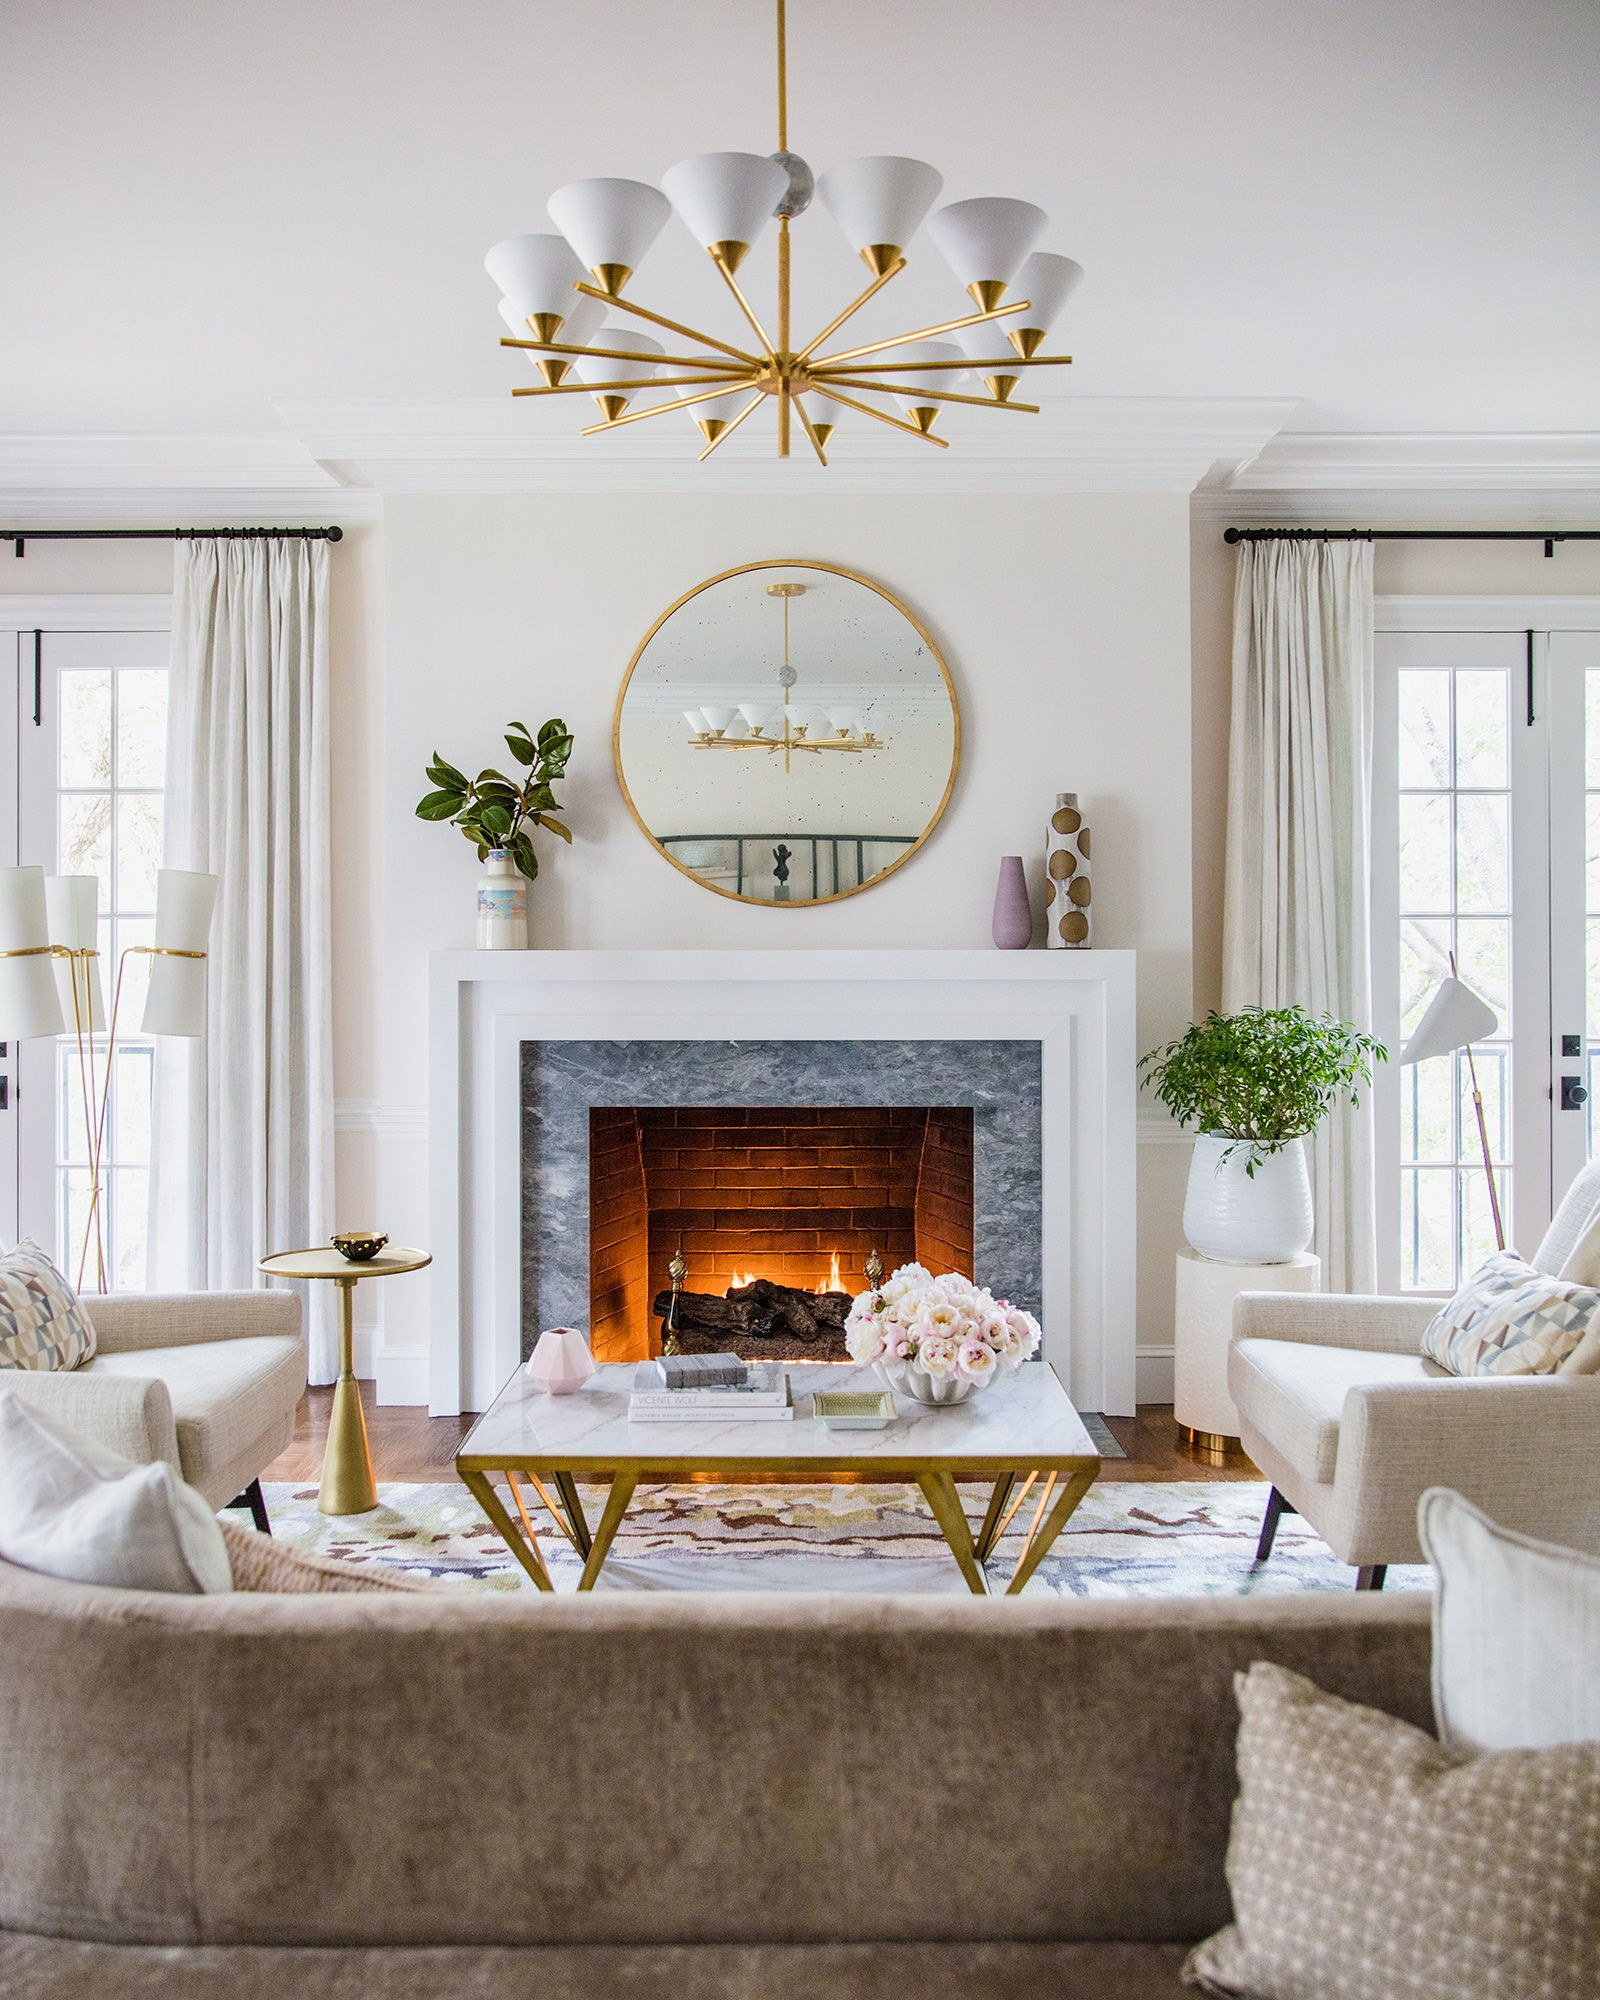 White Transitional Fireplace Design With Gray Marble Surround Tile Round Mirror Over The Living Room With Fireplace Fireplace Design Transitional Fireplaces